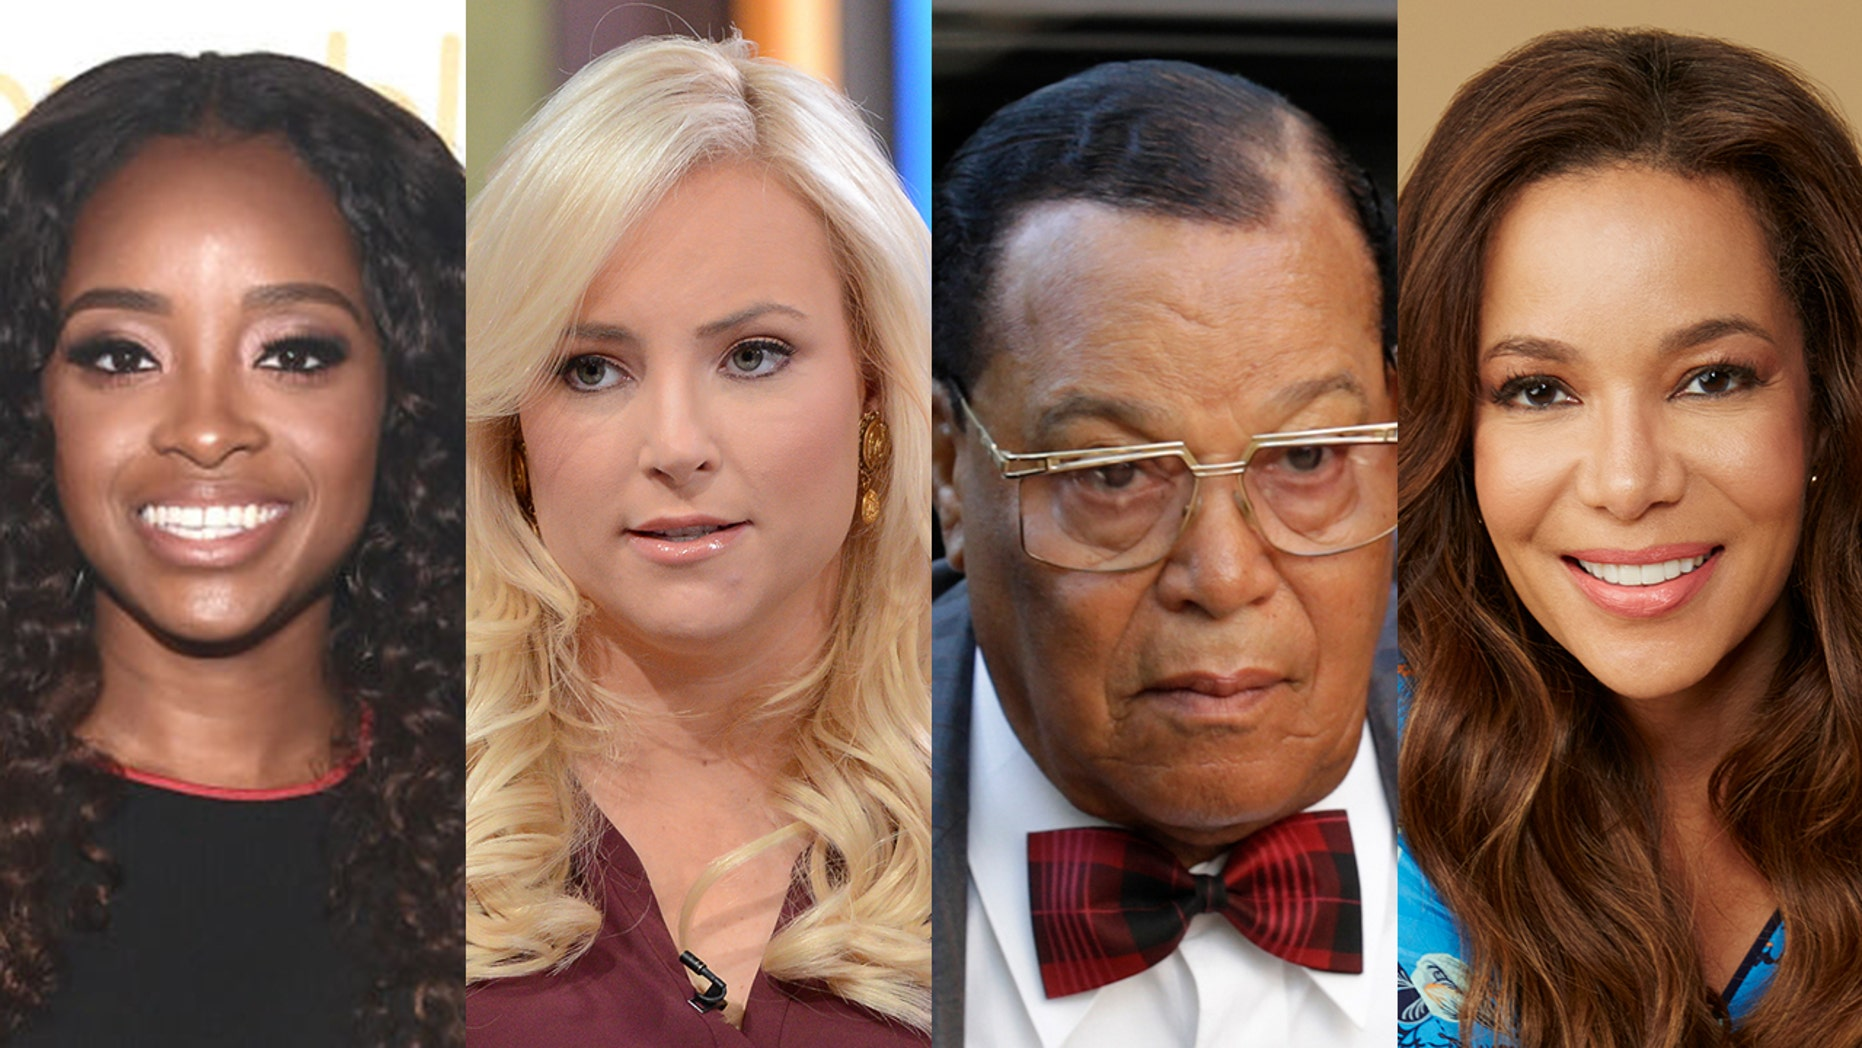 Meghan McCain and Sunny Hostin grilled Women's March co-founder Tamika Mallory over her ties to Louis Farrakhan.